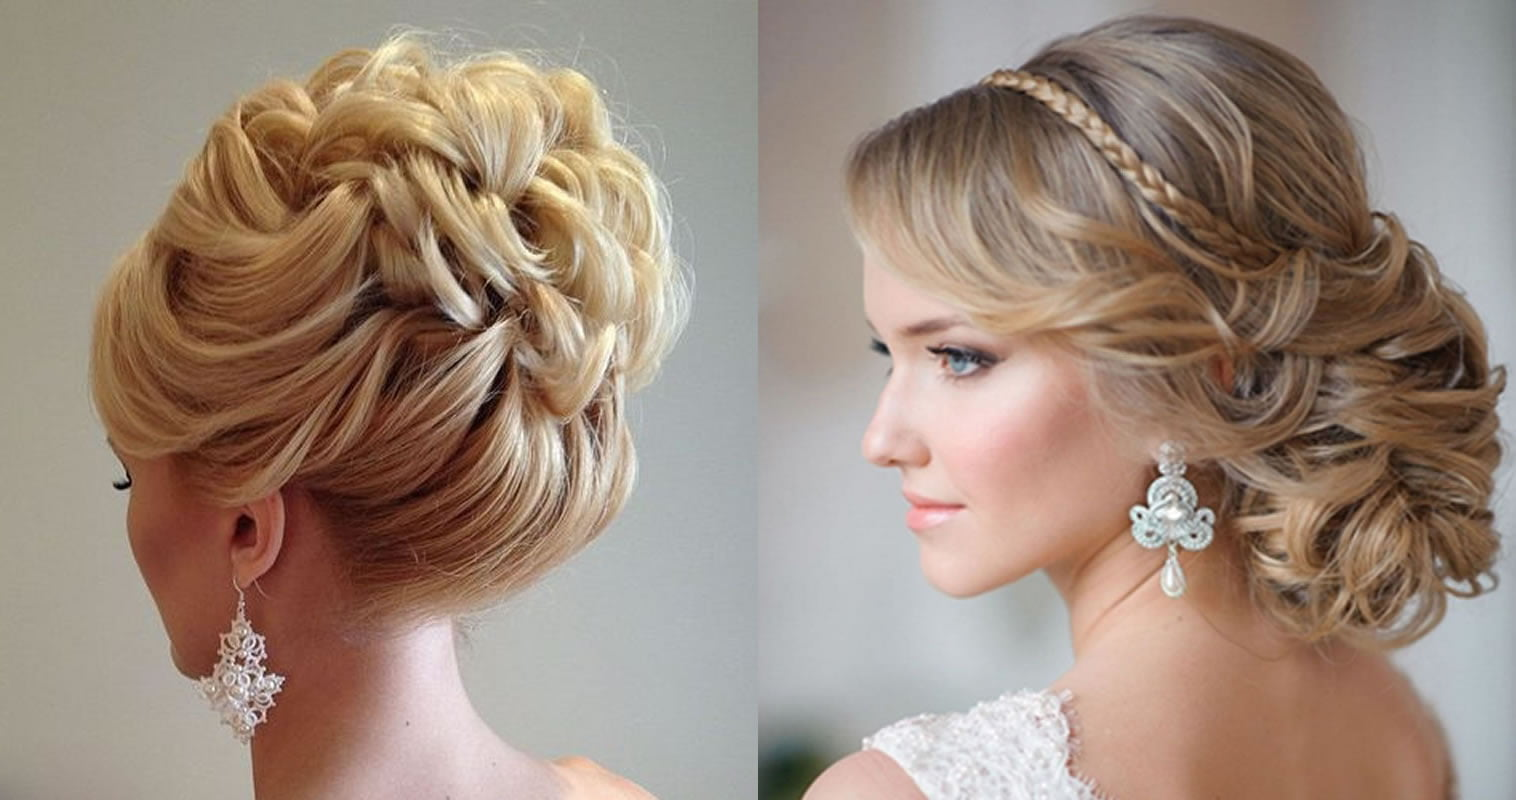 Wedding Hair Hairstyles: Updo Wedding Hairstyles 2019